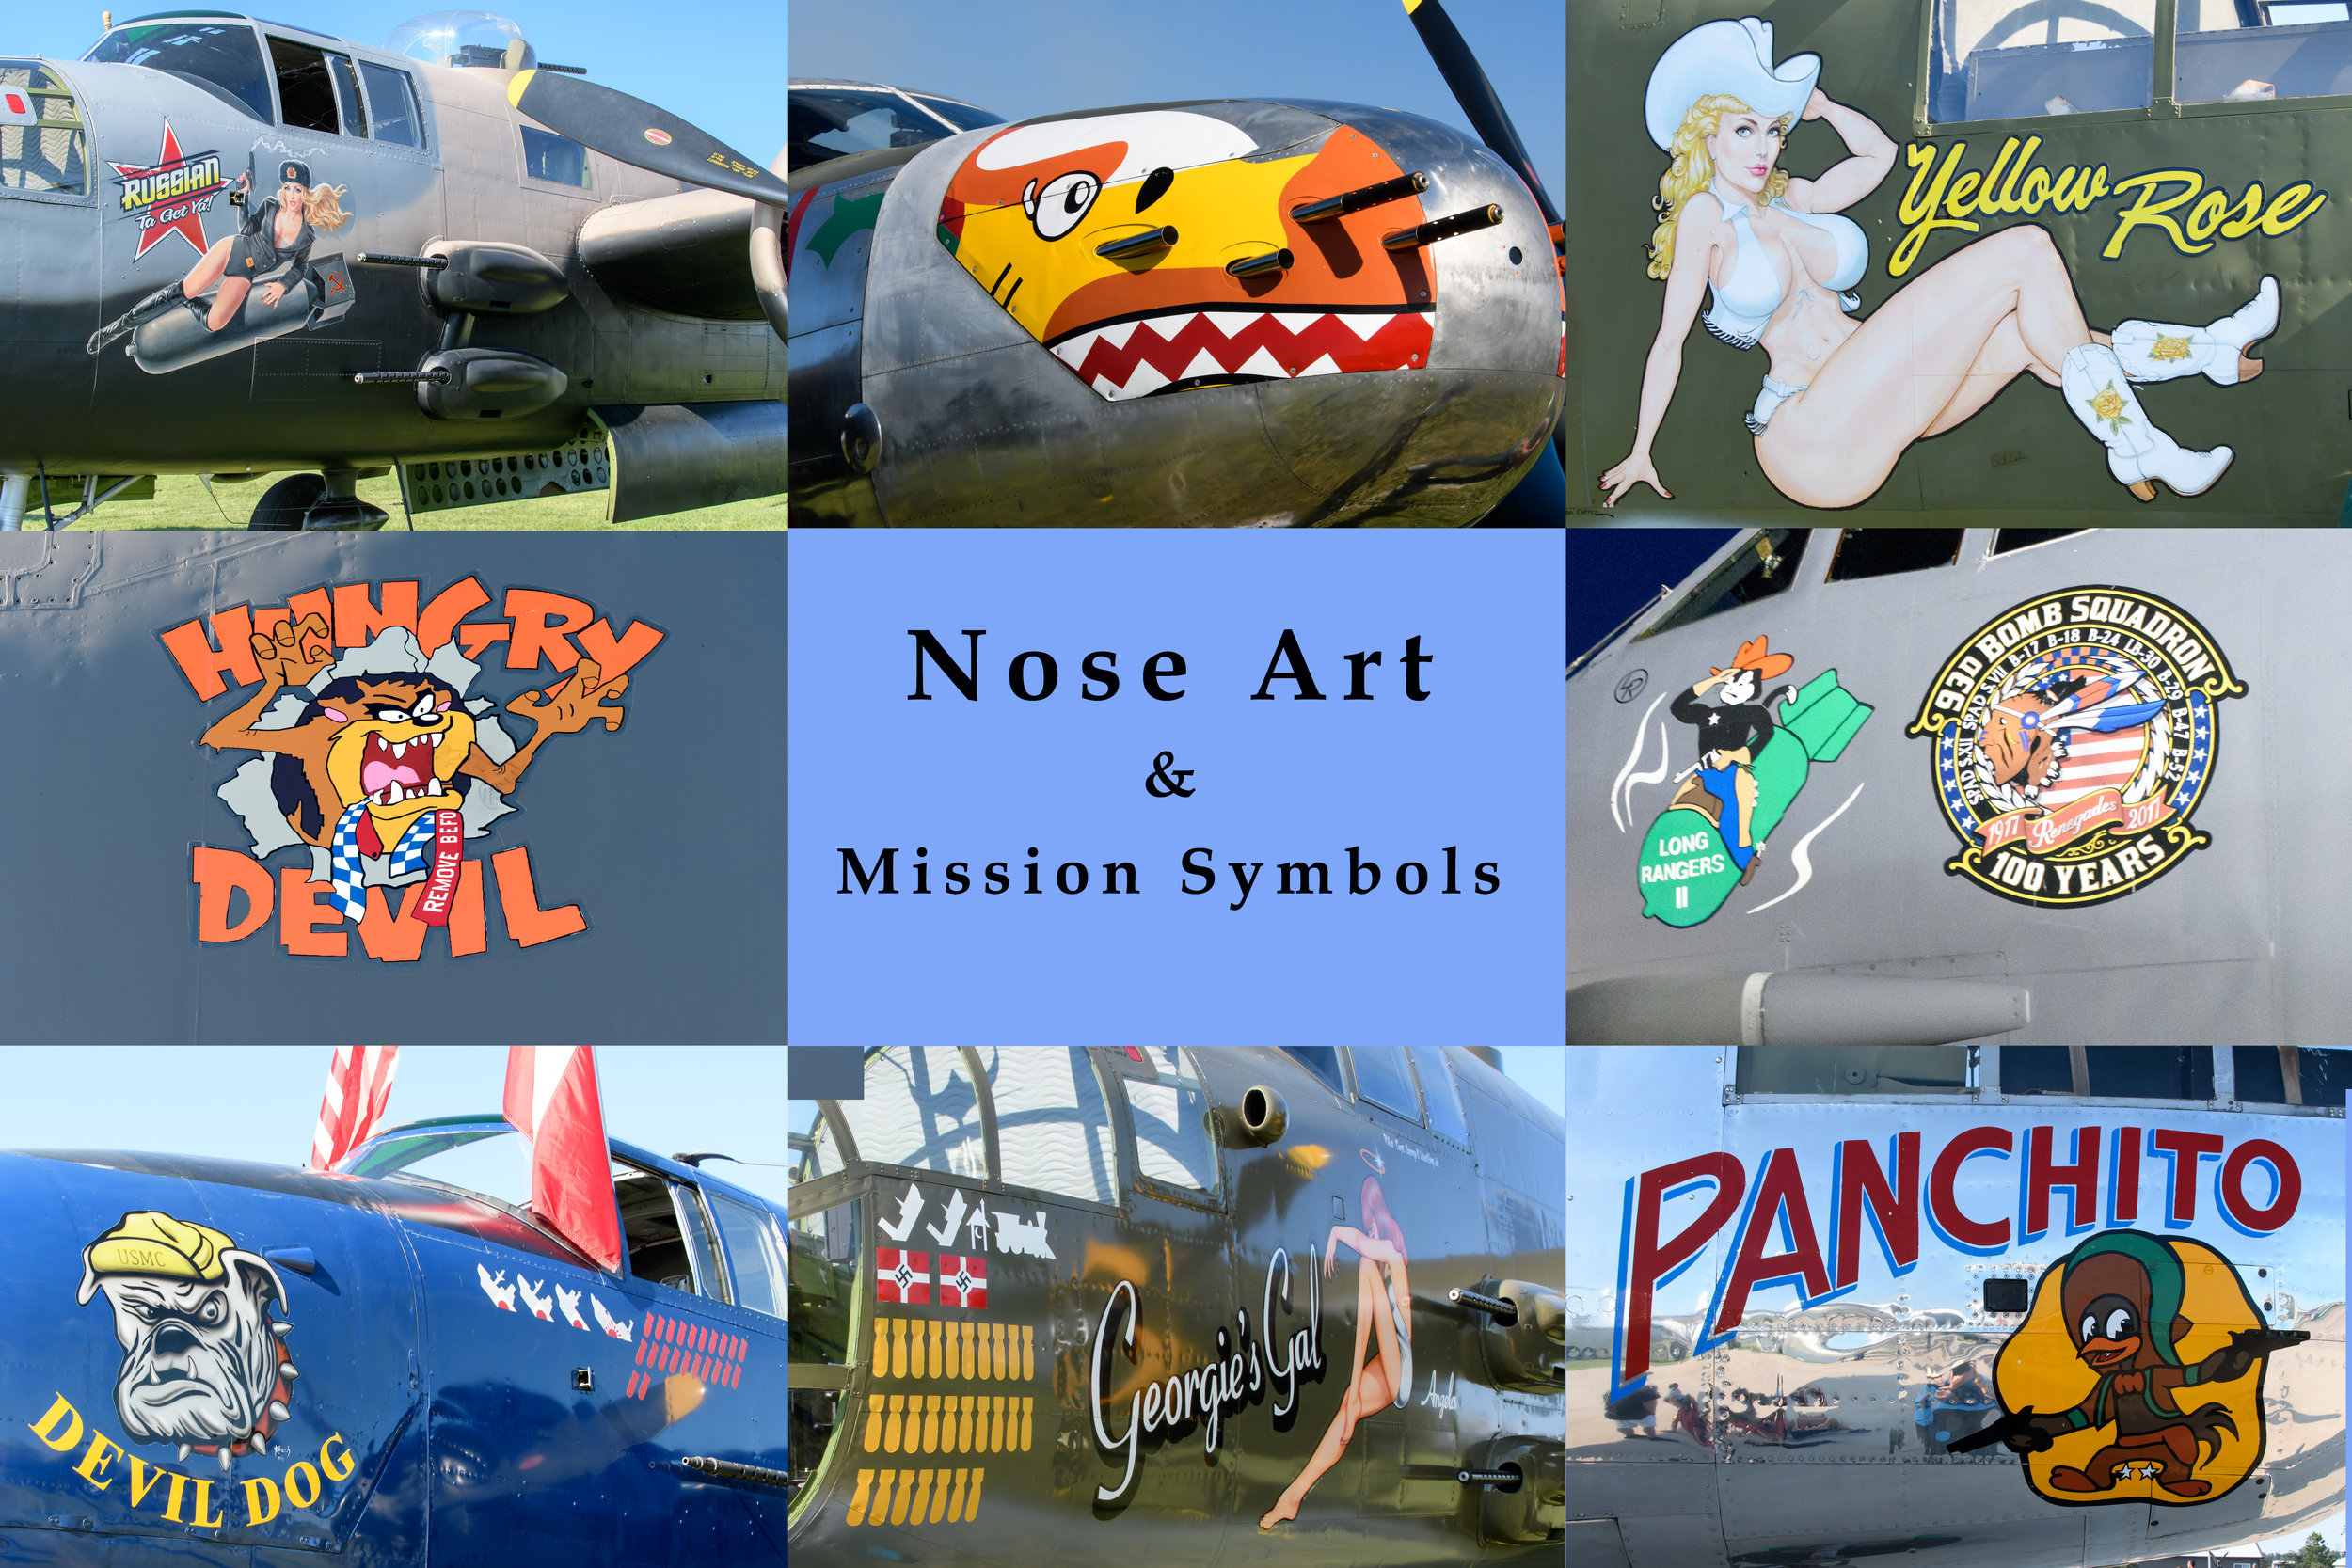 The artwork is quite detailed on the planes. The EAA museum has an exhibit of nose art on display (something to go back to see?) The mission symbols on Georgie's Gal above represent 27 bombing missions, 2 downed aircraft, two ships, and a train. The one symbol that I was not able to find a description of was the little house with a moon on it...several of us jokingly said maybe they had hit an outhouse!